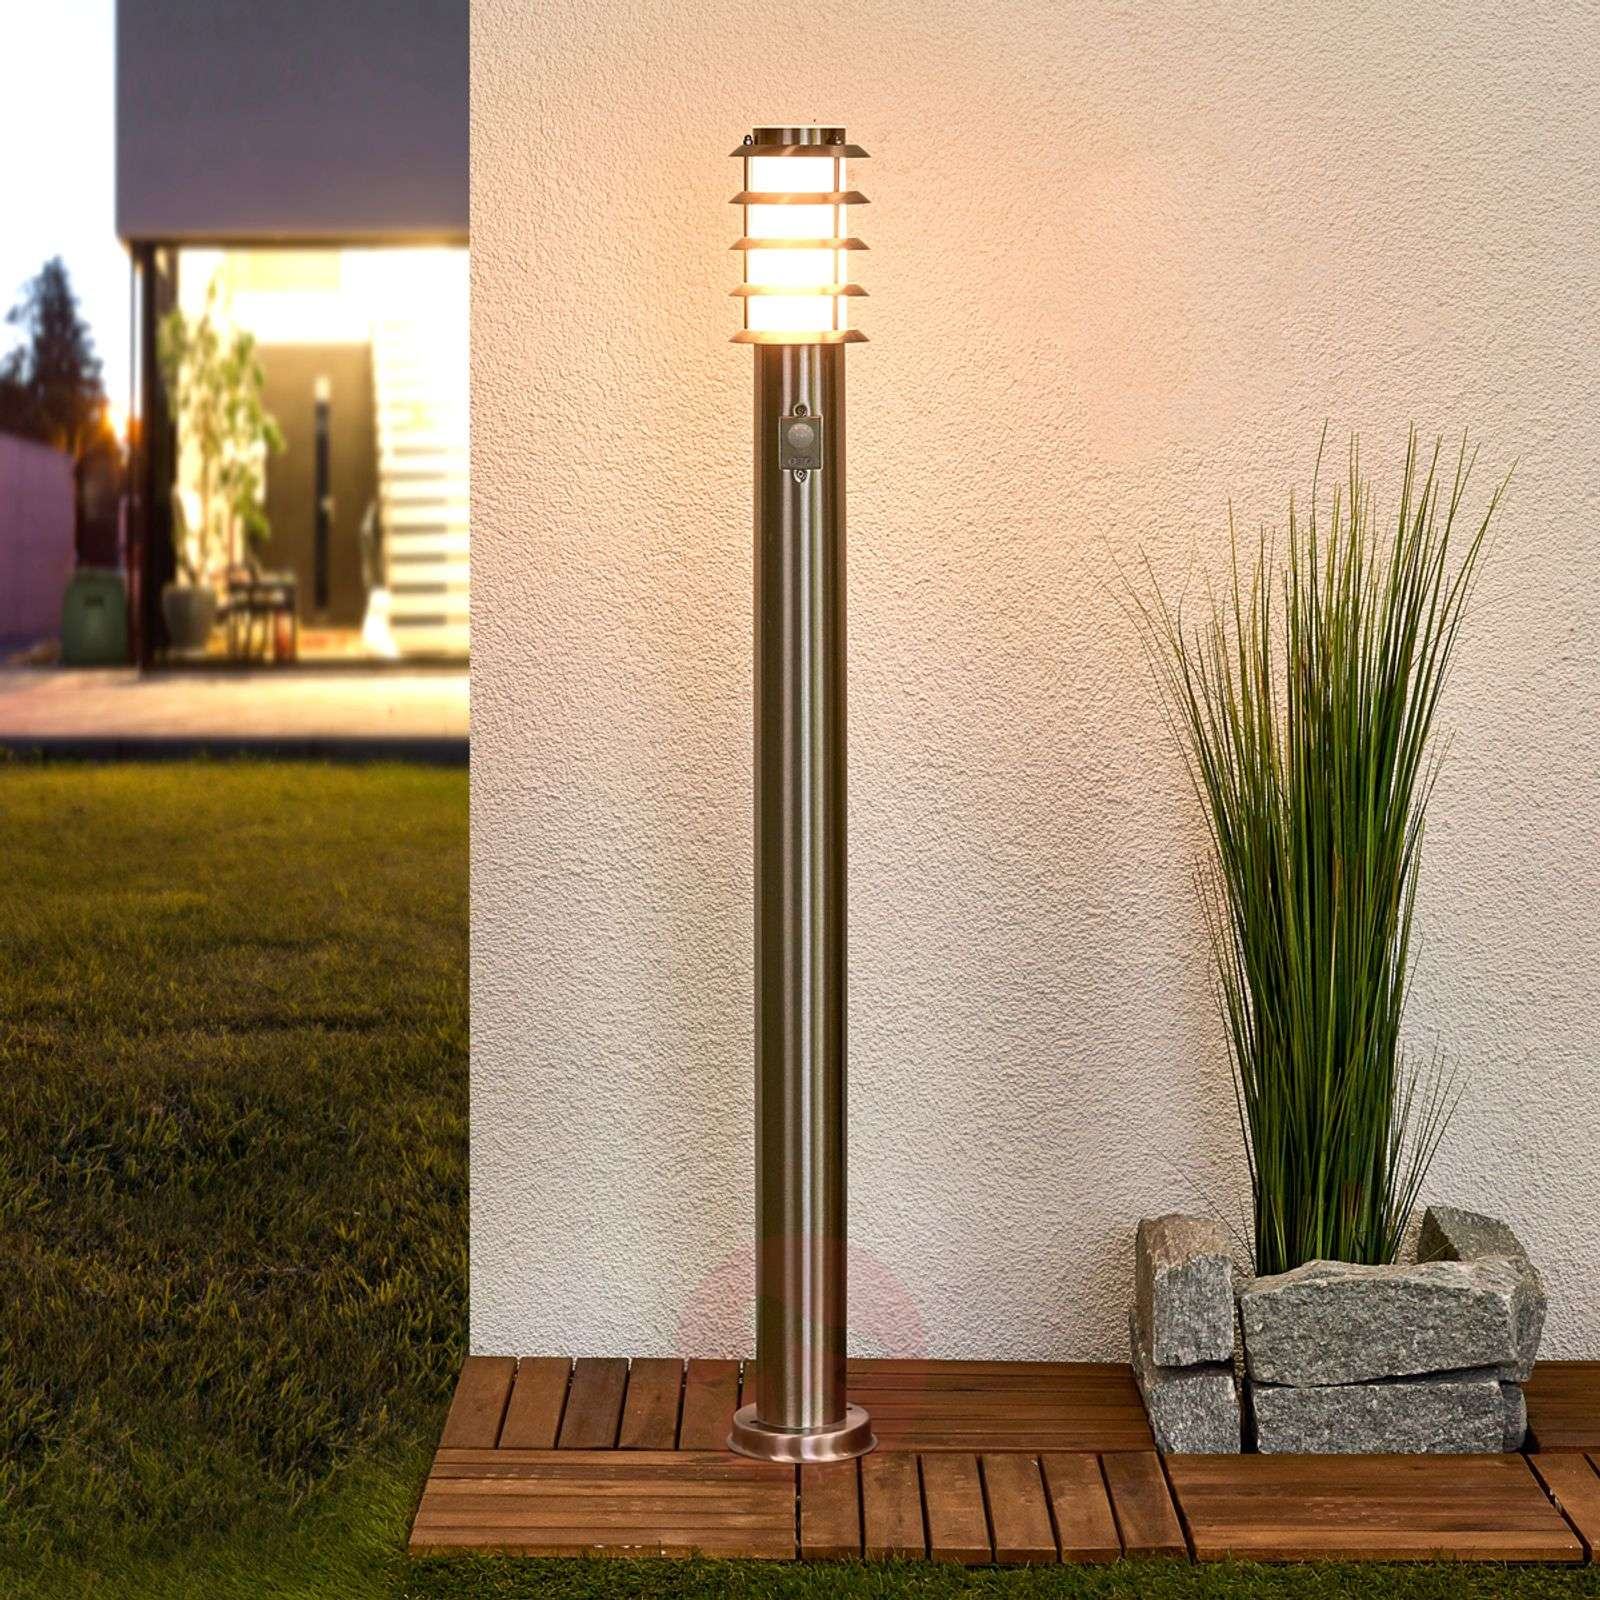 Sensor path lamp Selina made from stainless steel-9972018-06